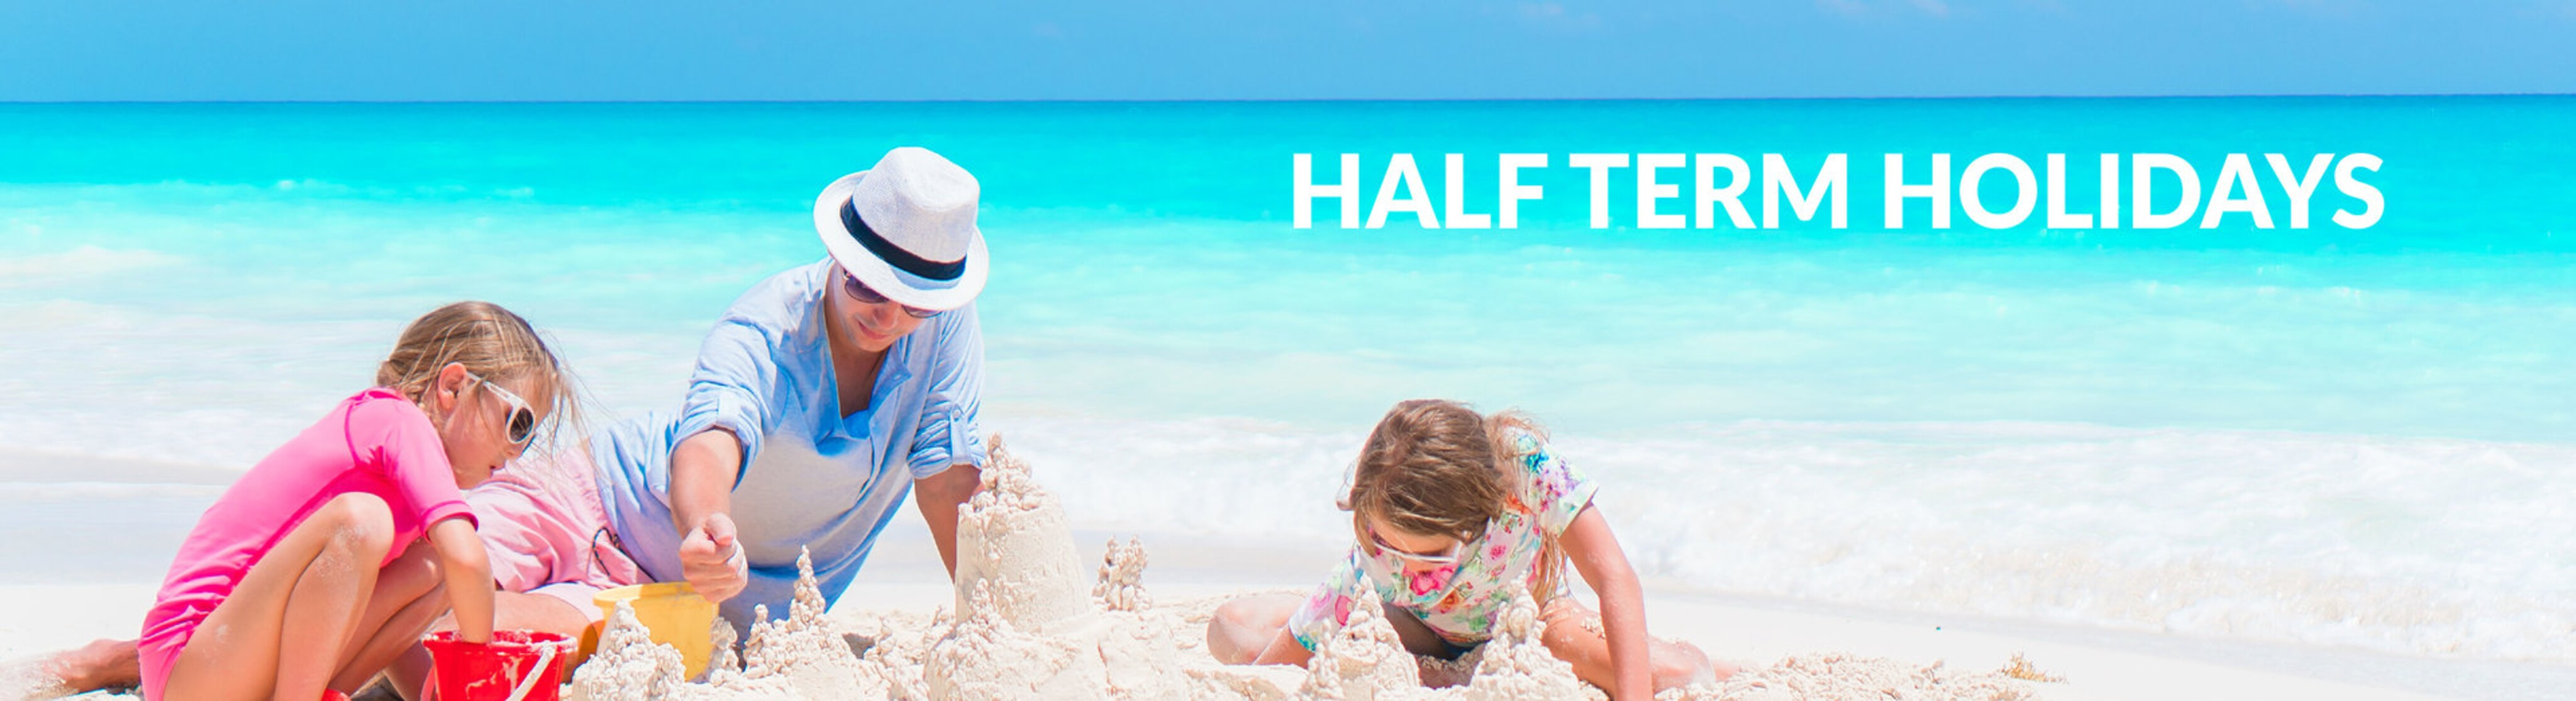 Half Term Holidays with On the Beach